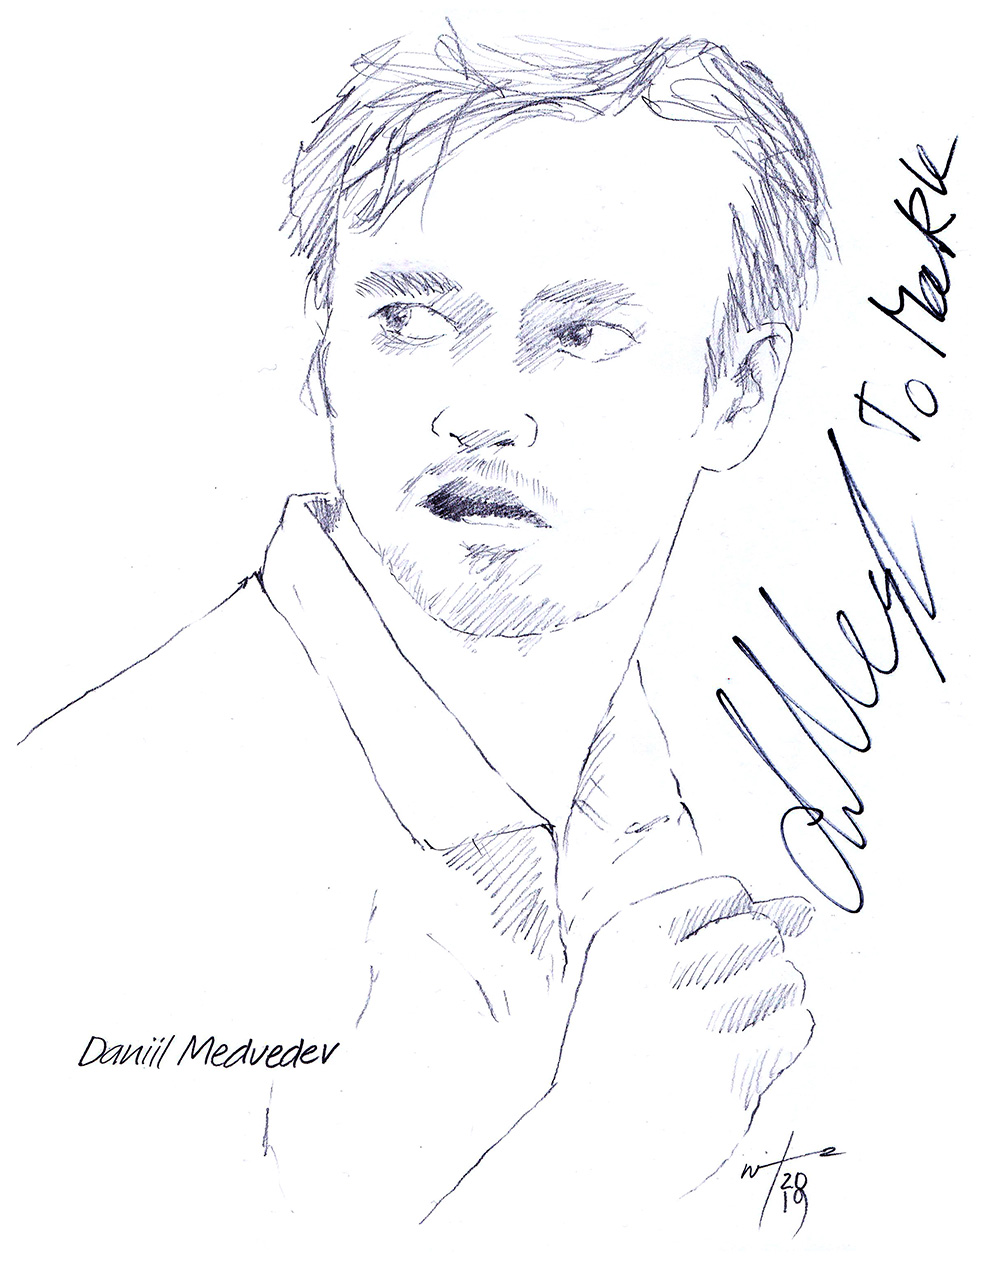 Autographed drawing of tennis player Daniil Medvedev